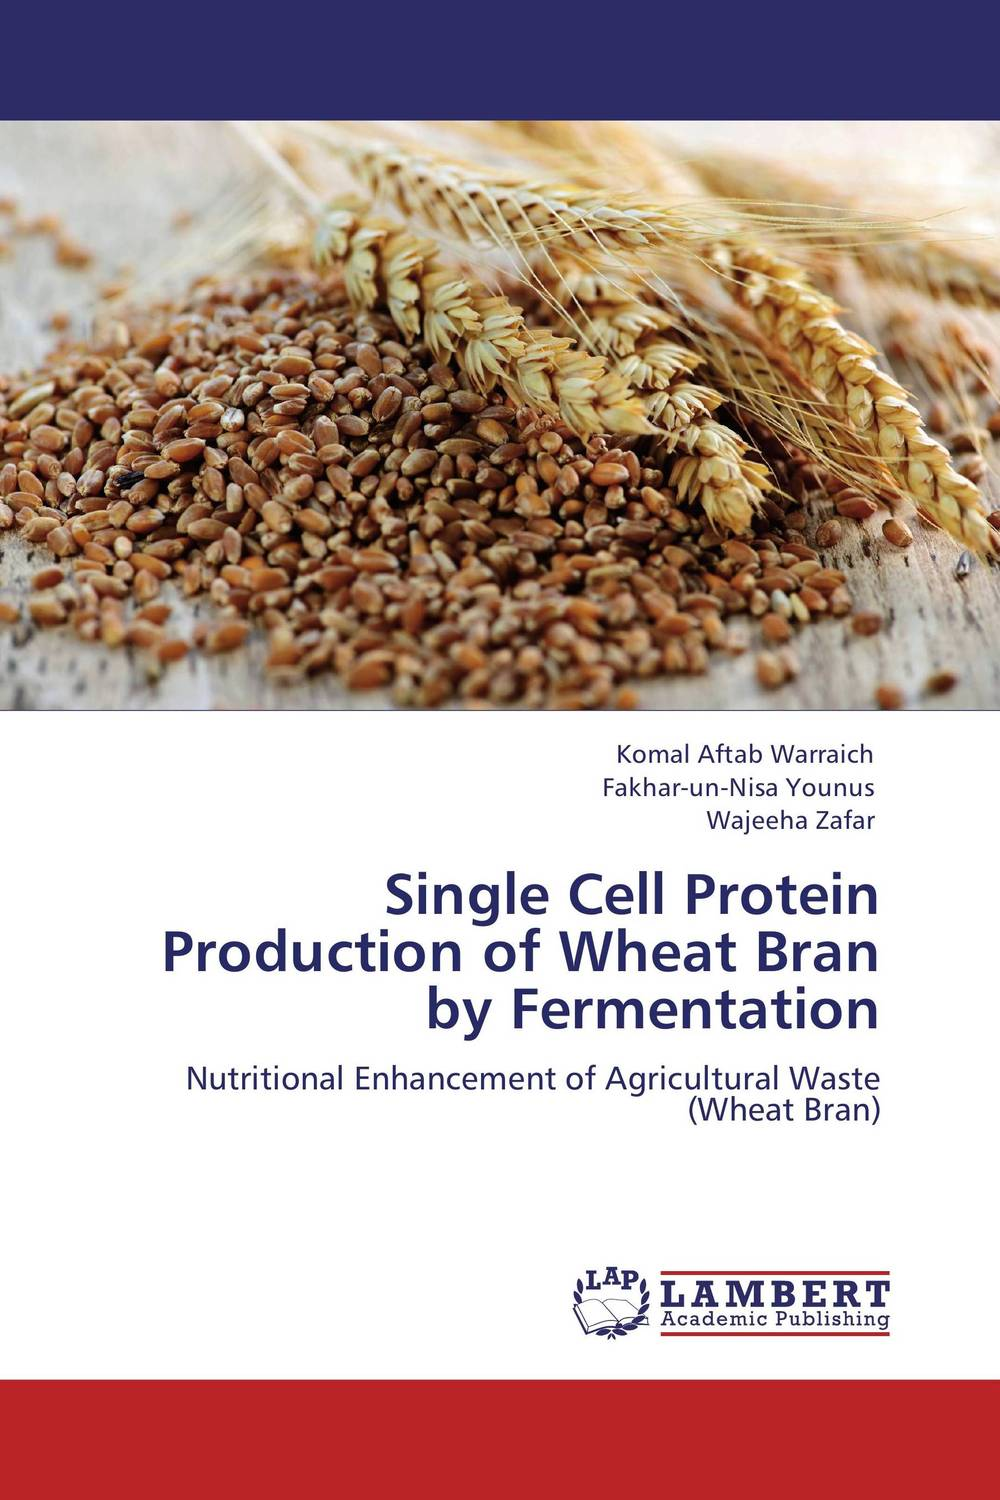 Single Cell Protein Production of Wheat Bran by Fermentation mastering fermentation